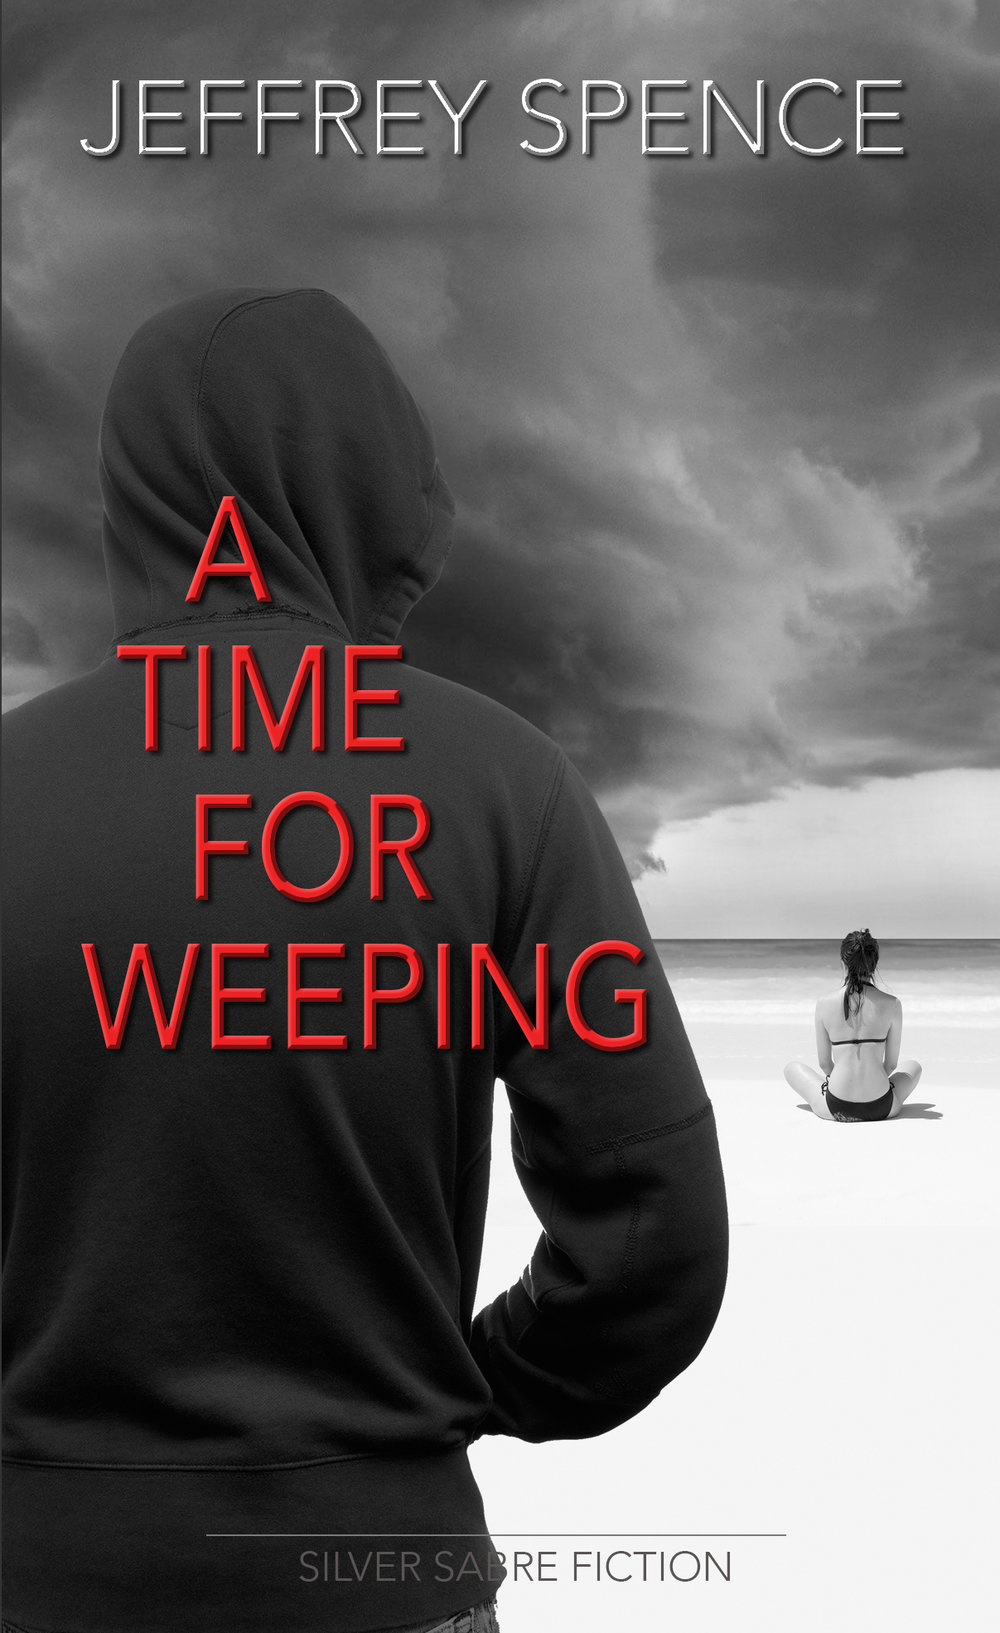 IDT02 5 A Time for Weeping cover eBook.jpg